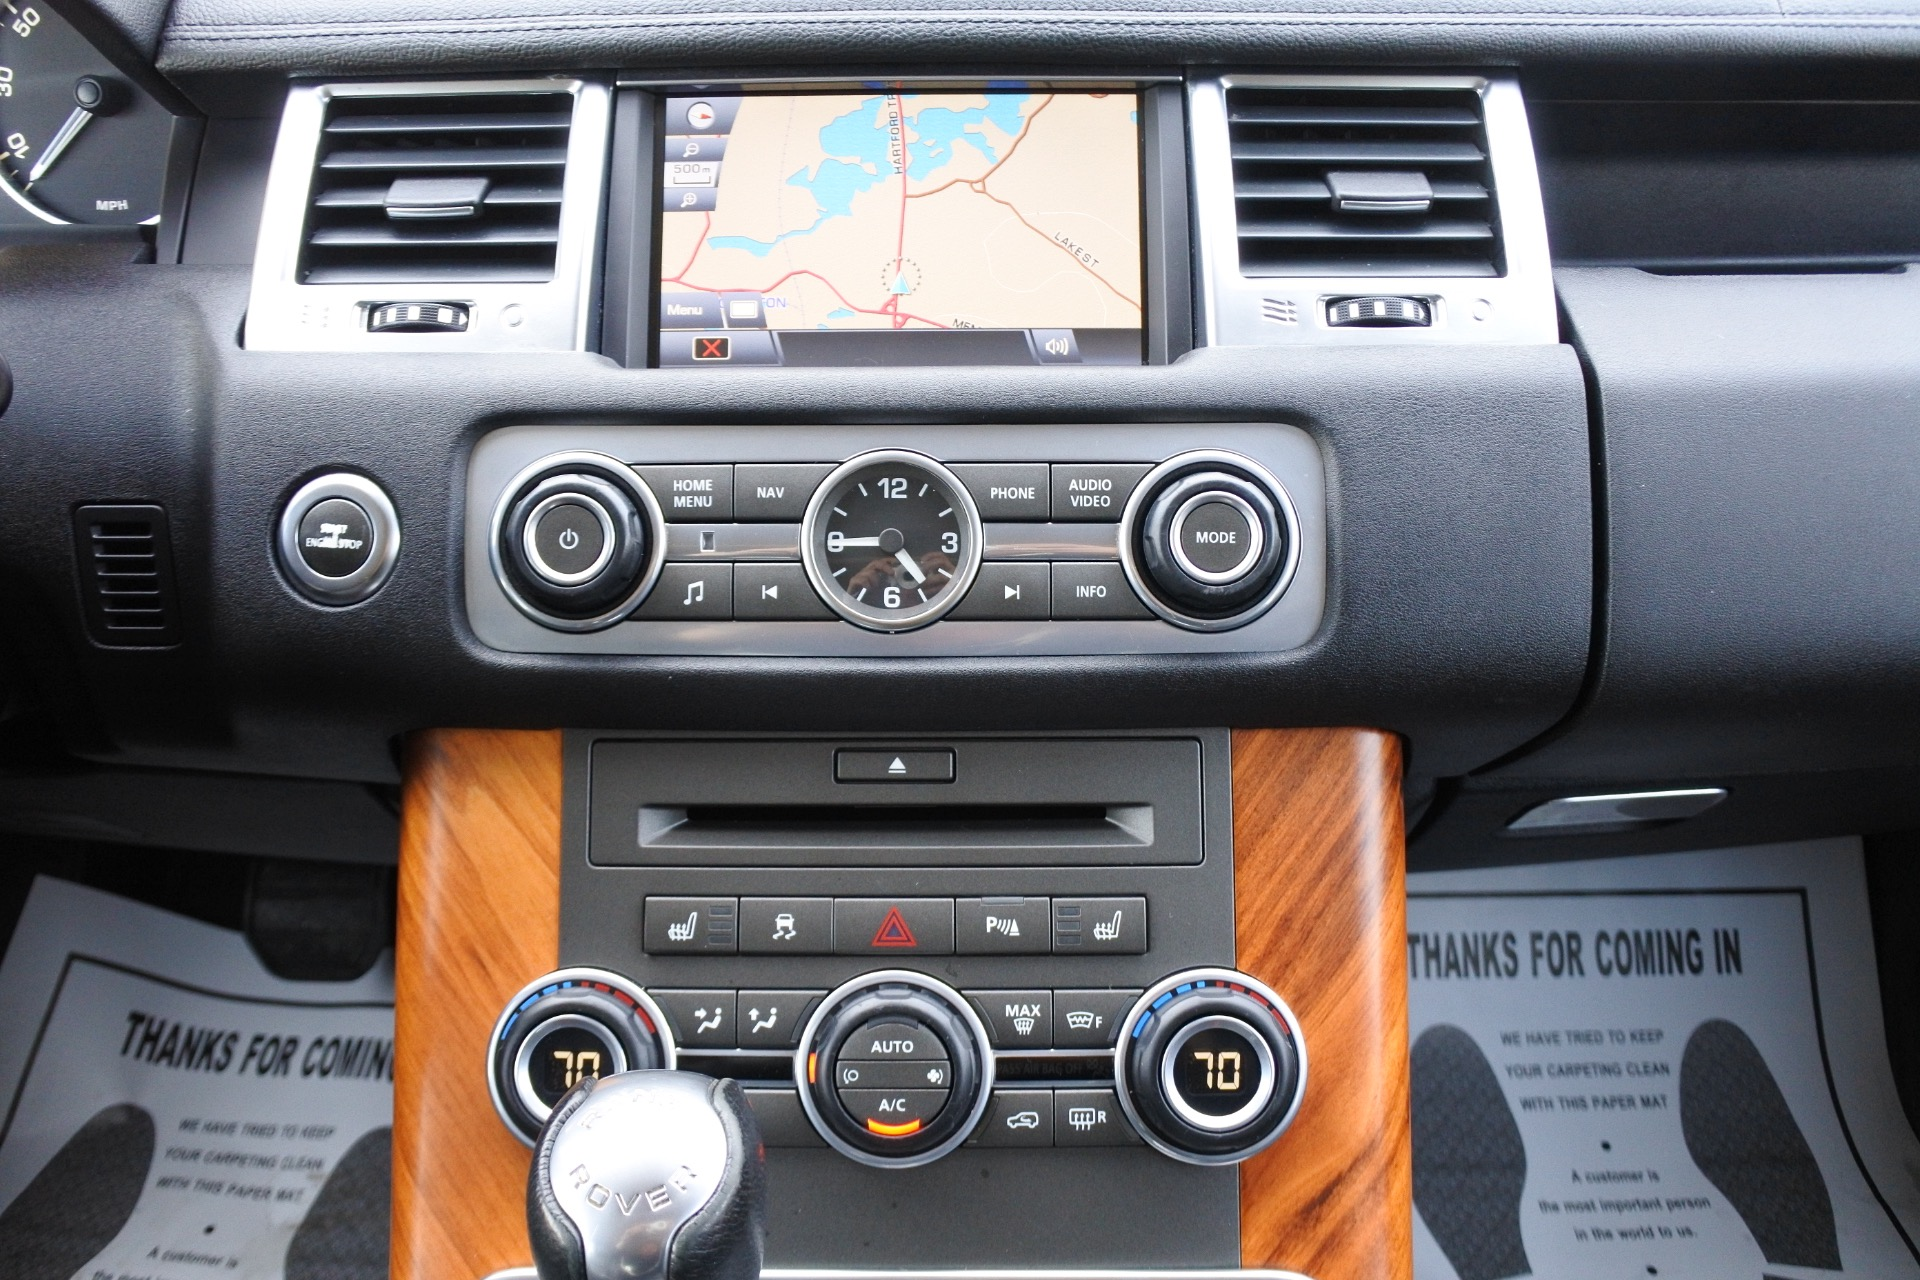 Used 2010 Land Rover Range Rover Sport Supercharged For Sale